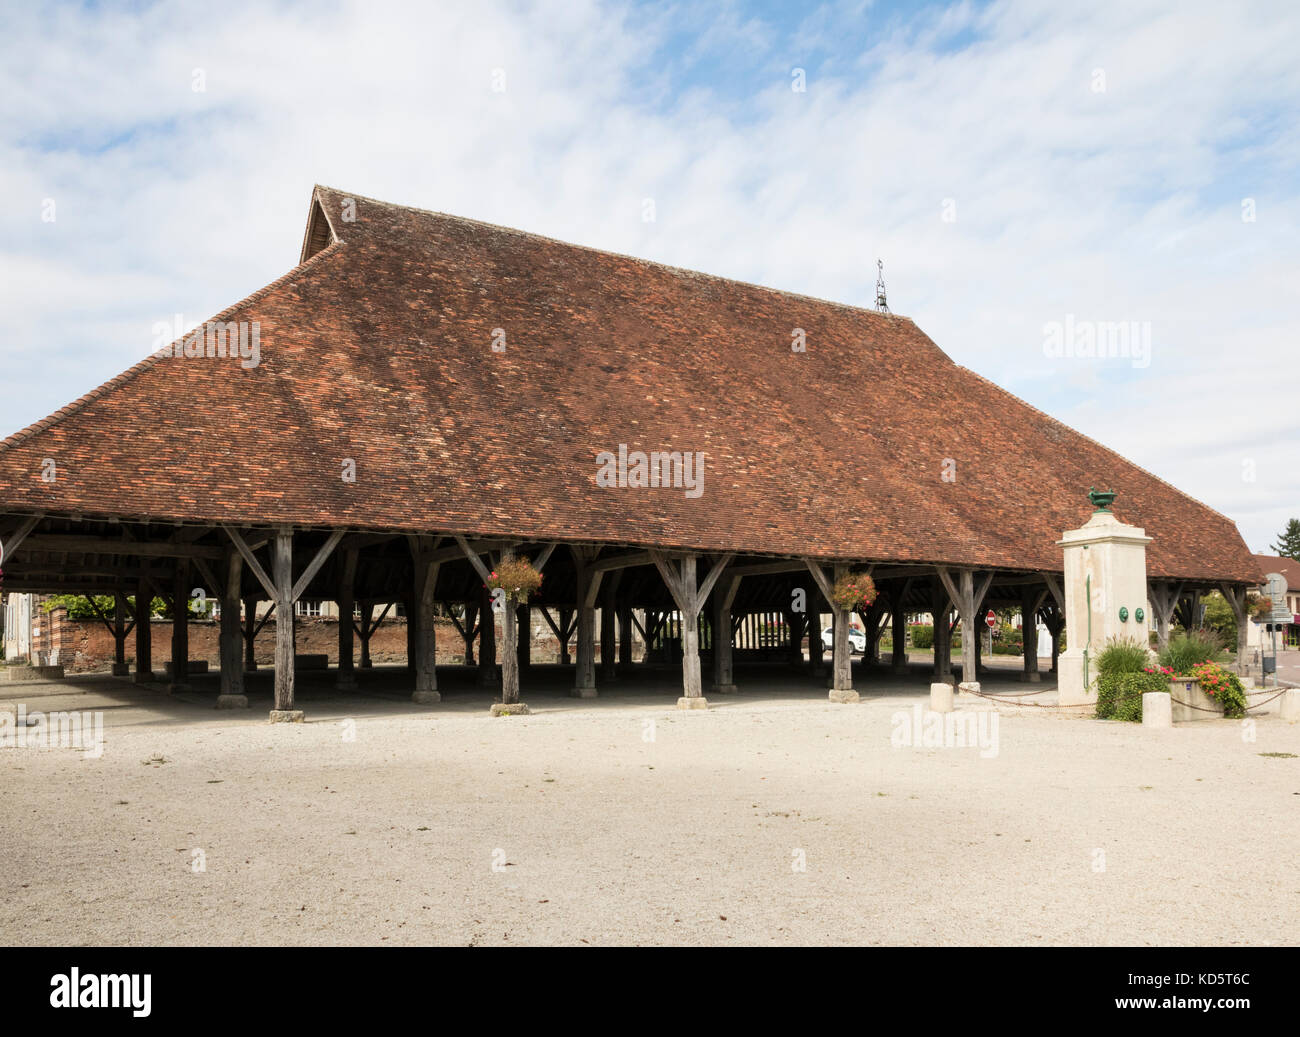 Market Hall in Piney, near Troyes, Champagne Region, France Stock Photo